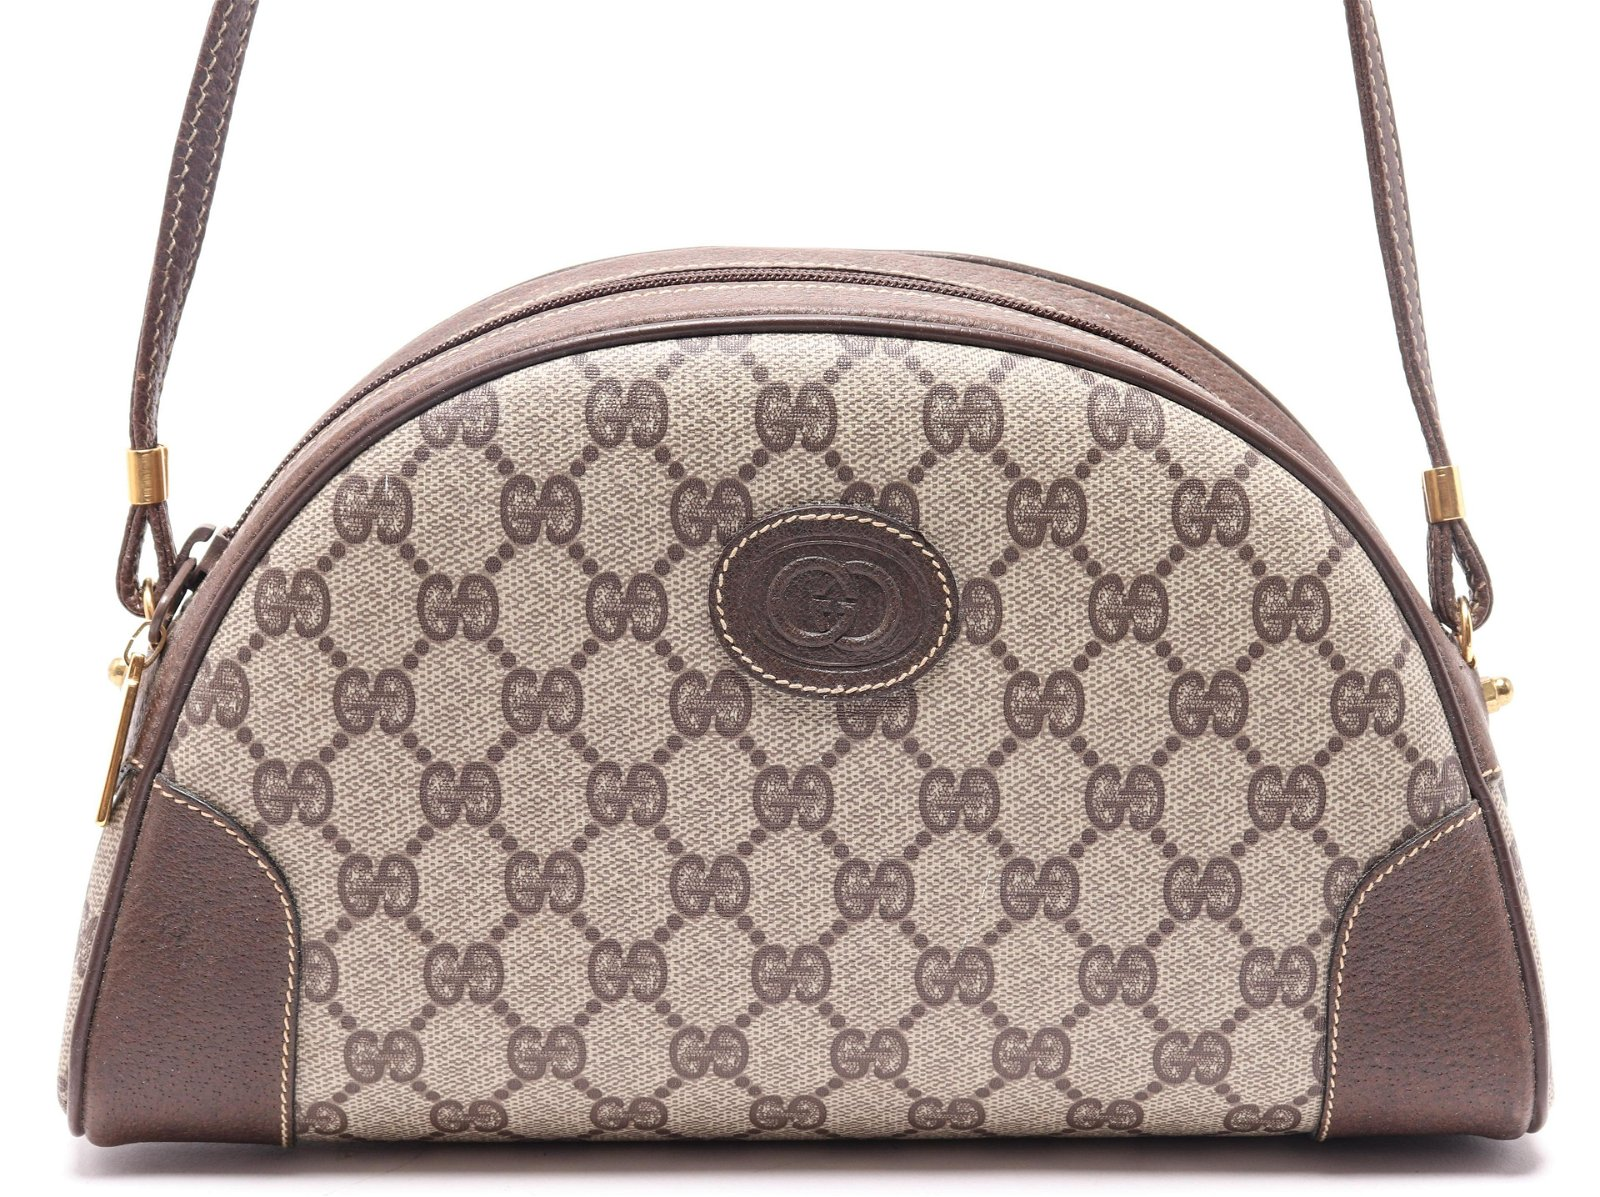 Gucci Monogram Canvas & Leather Handbag